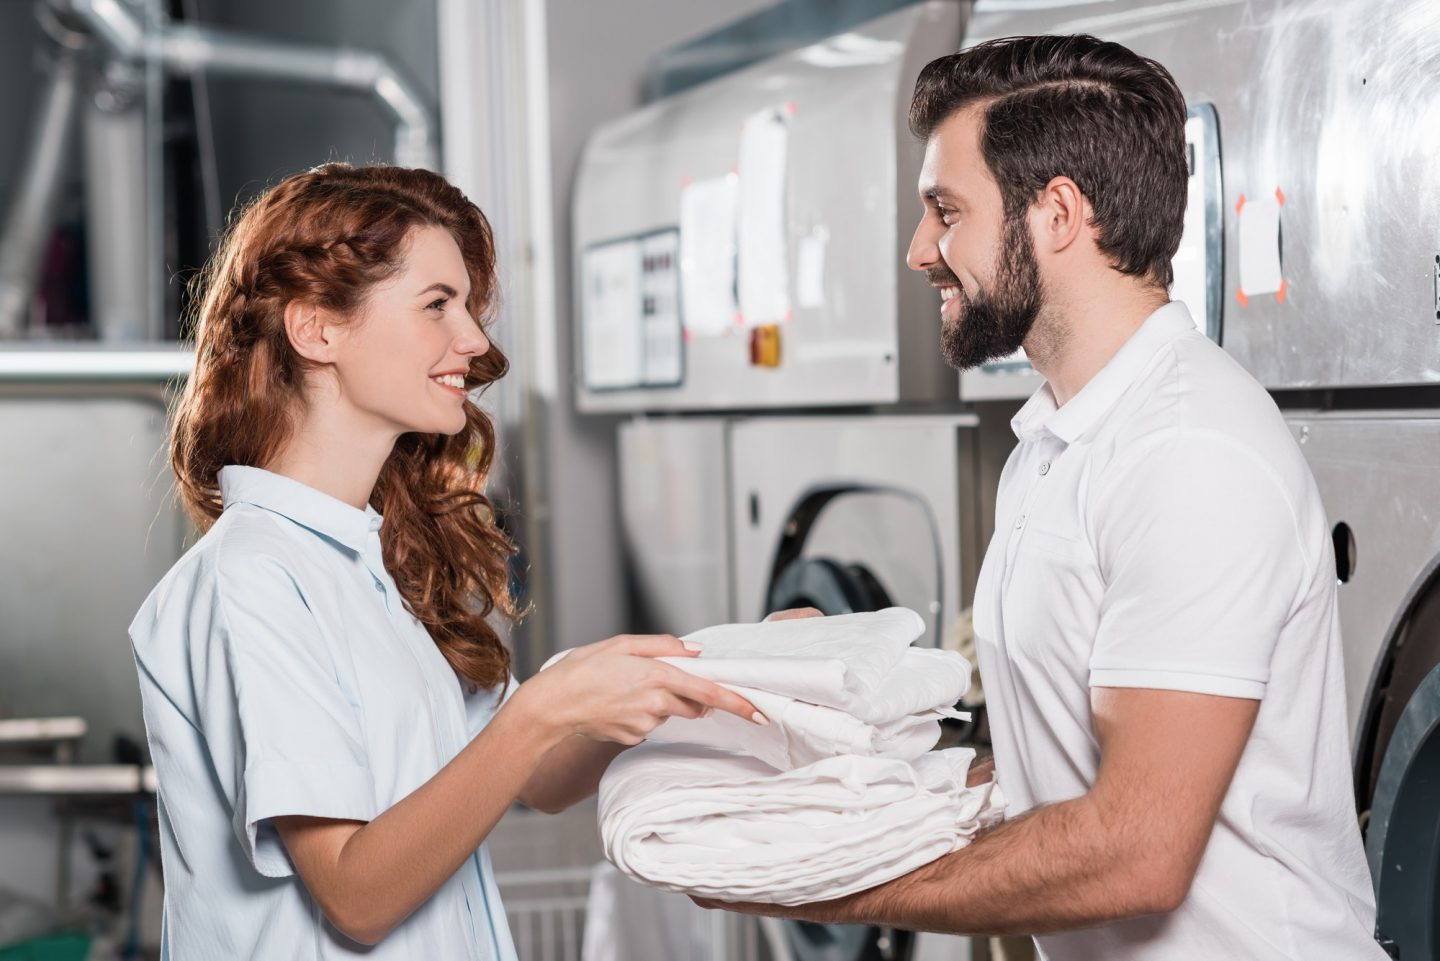 dry cleaning managers working together at laundry